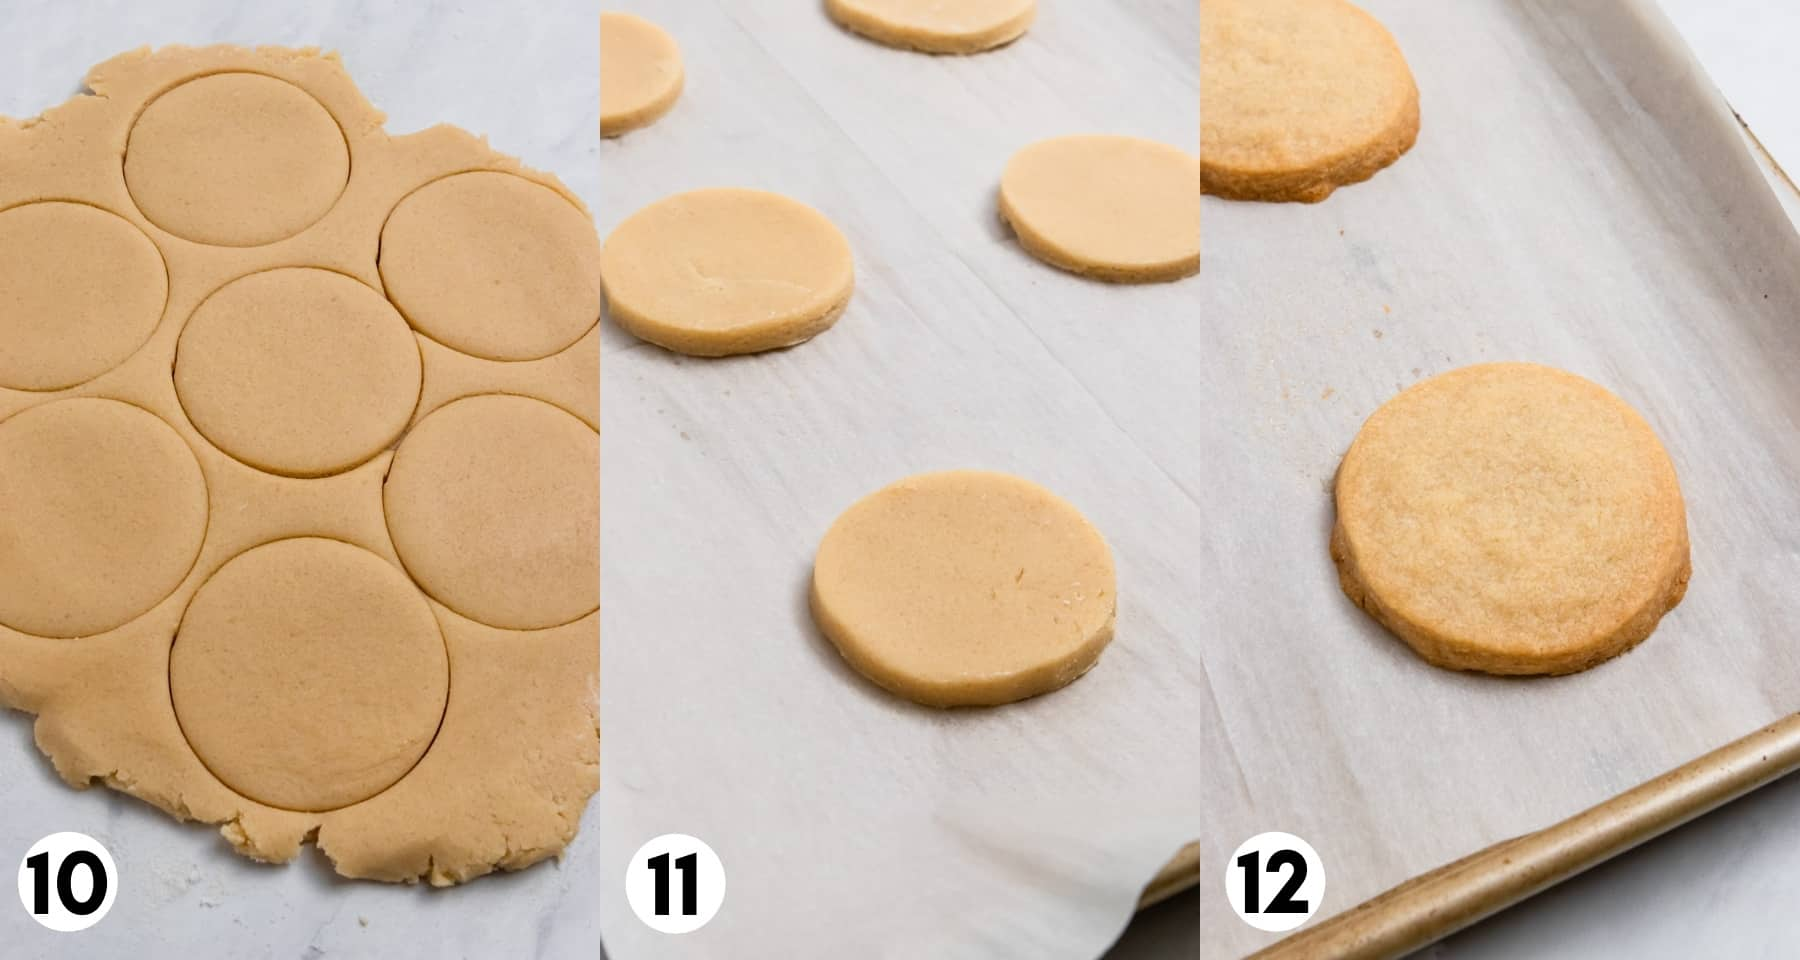 Rolled cookie dough with cookie cutter cut outs on parchment.